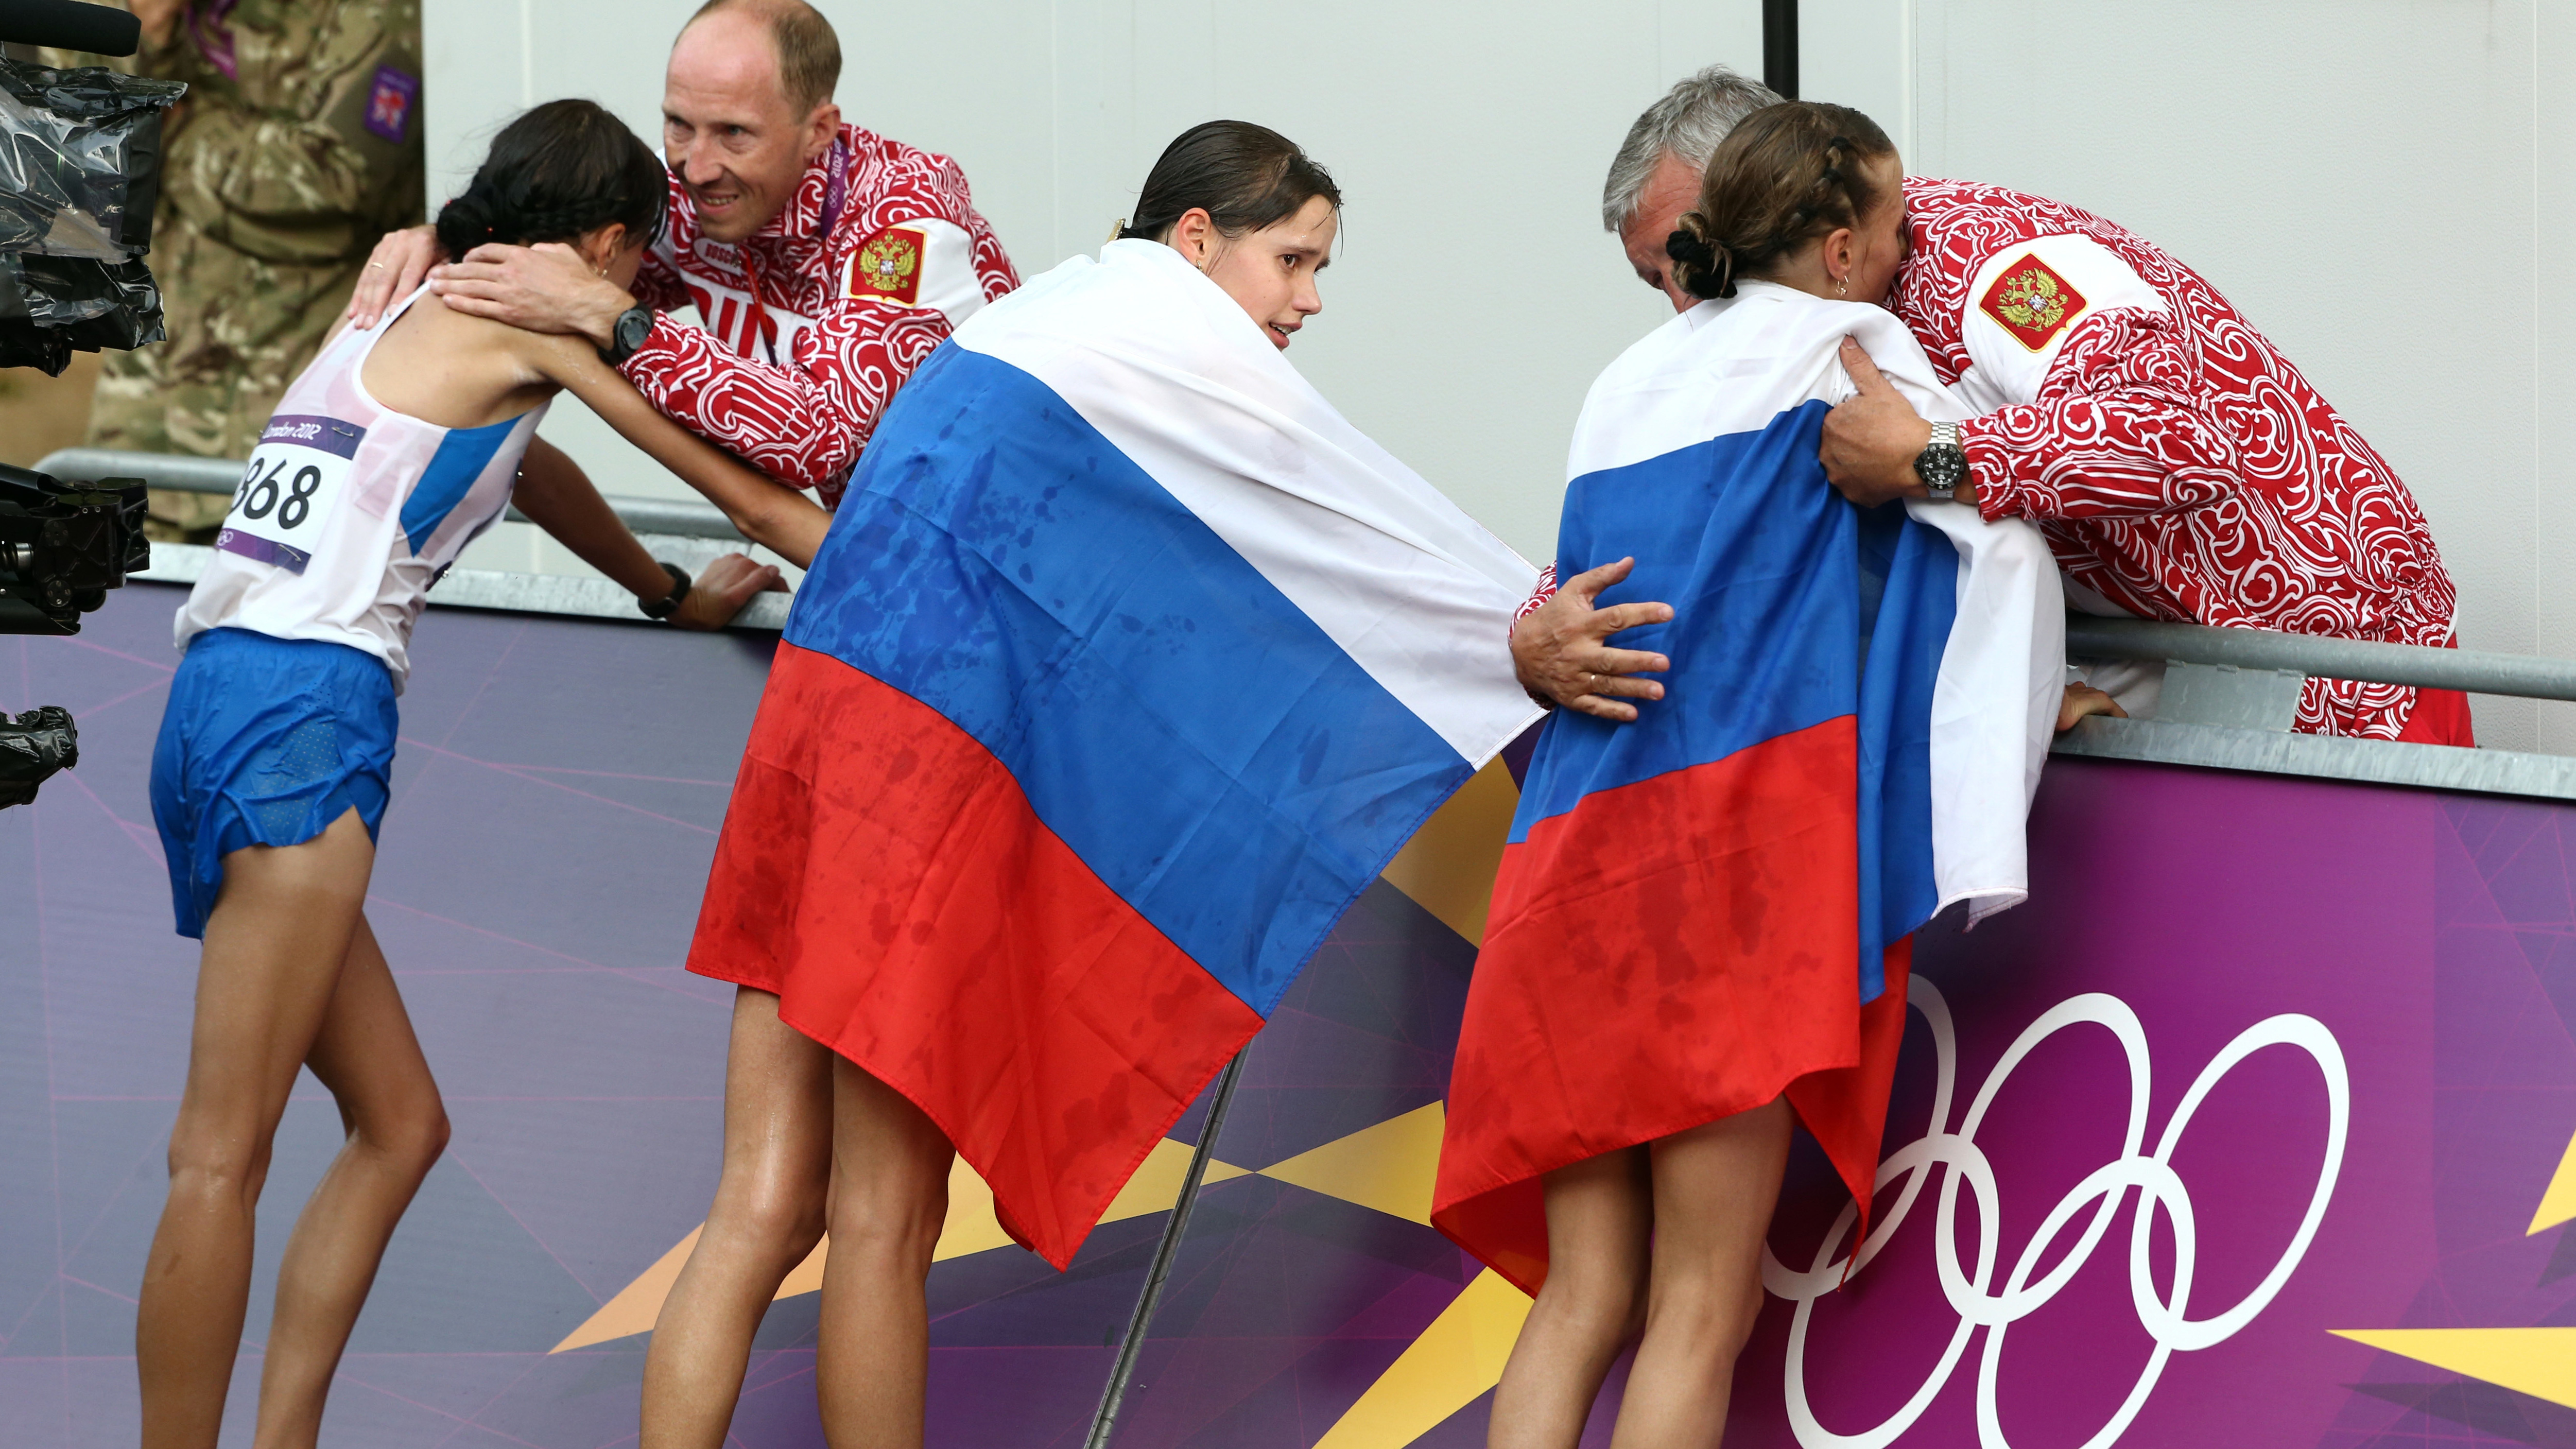 The fate of Russia's athletes for this summer's Olympics is cast further into doubt by a new setback. Here, Russian coaches and athletes are seen at the 2012 Summer Olympics in London. (Sergei Grits/AP)